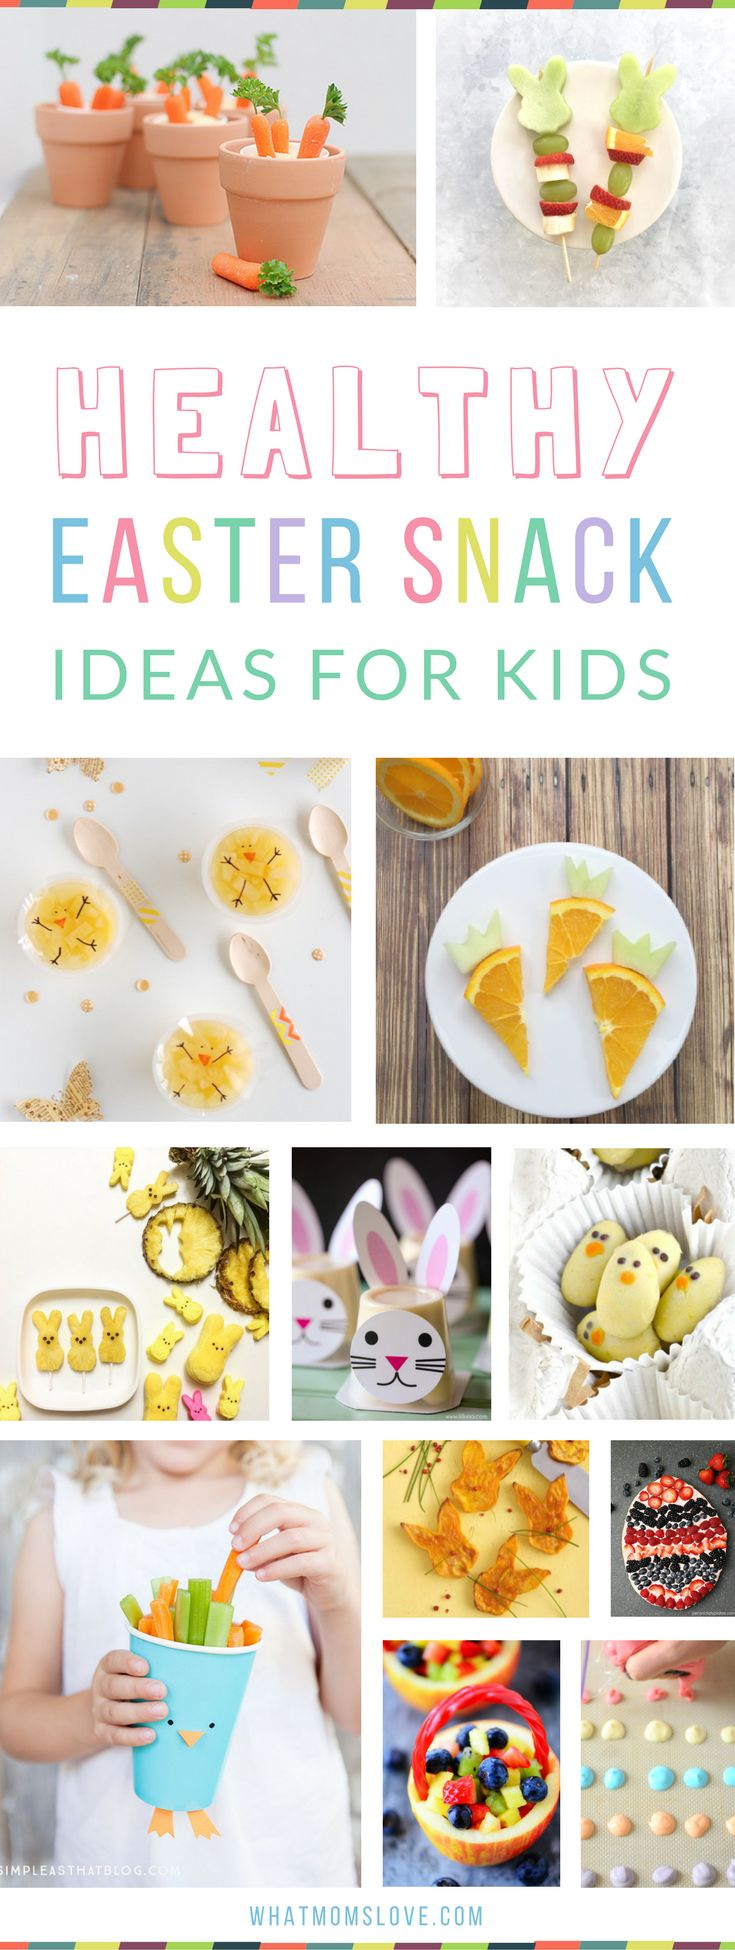 Healthy Easter Snack Ideas for Kids | Fun snacks that are great for school or for your party, perfect for toddlers, preschoolers and big kids too! Super cute and creative ideas that are easy to make. Plus creative food for breakfast, lunch and dessert!